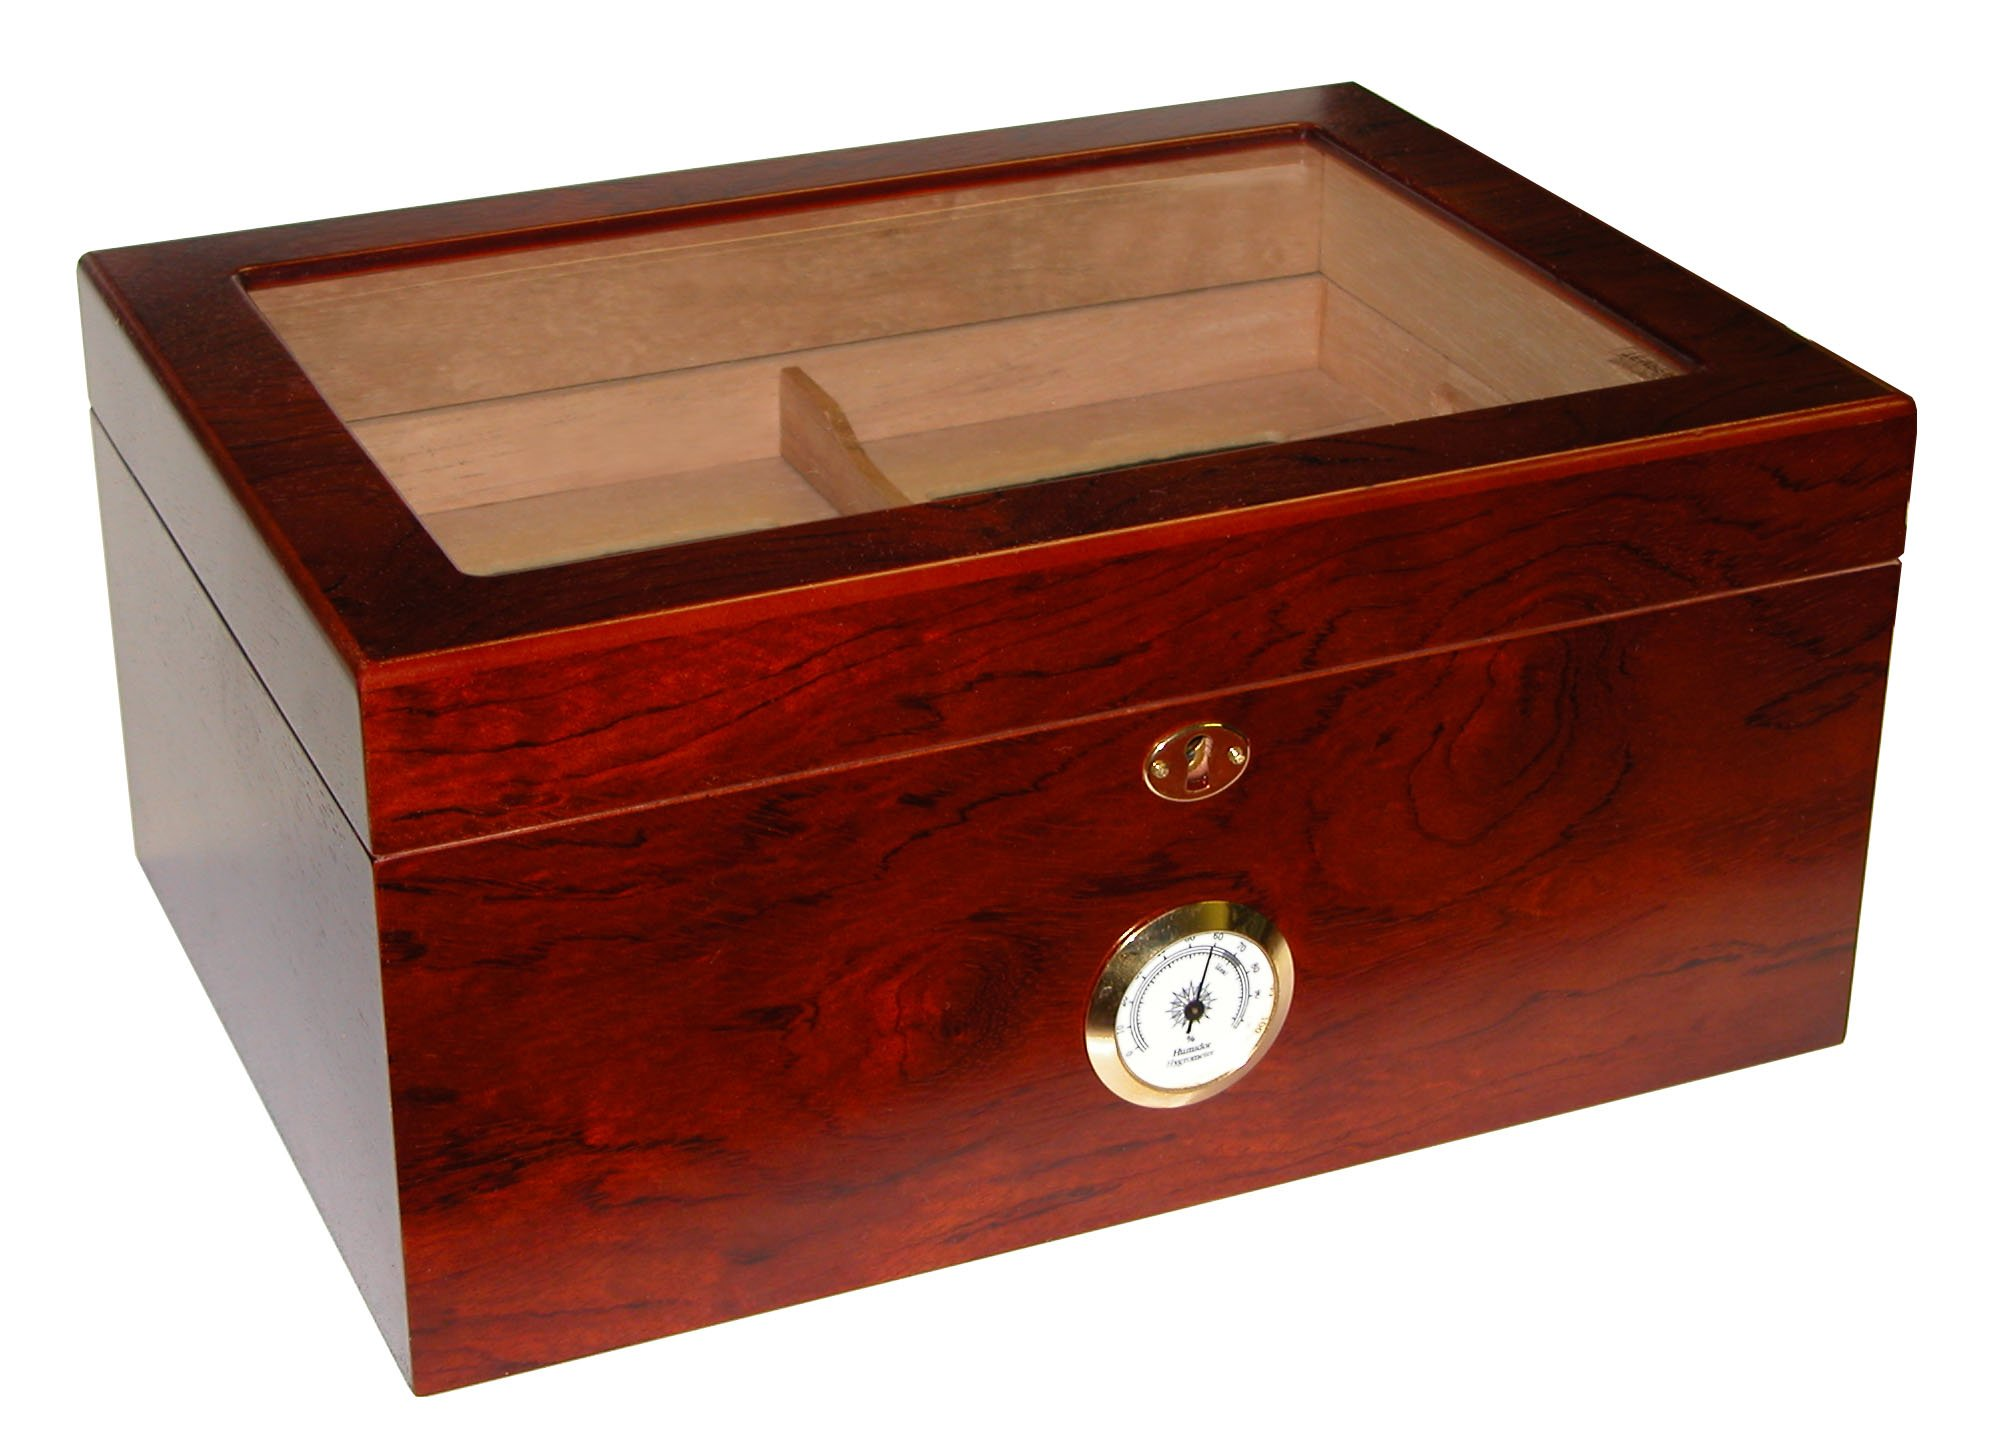 Quality Importers Milano Glasstop Humidor Rosewood, Spanish Cedar Tray With Divider, Holds 75-100 Cigars,